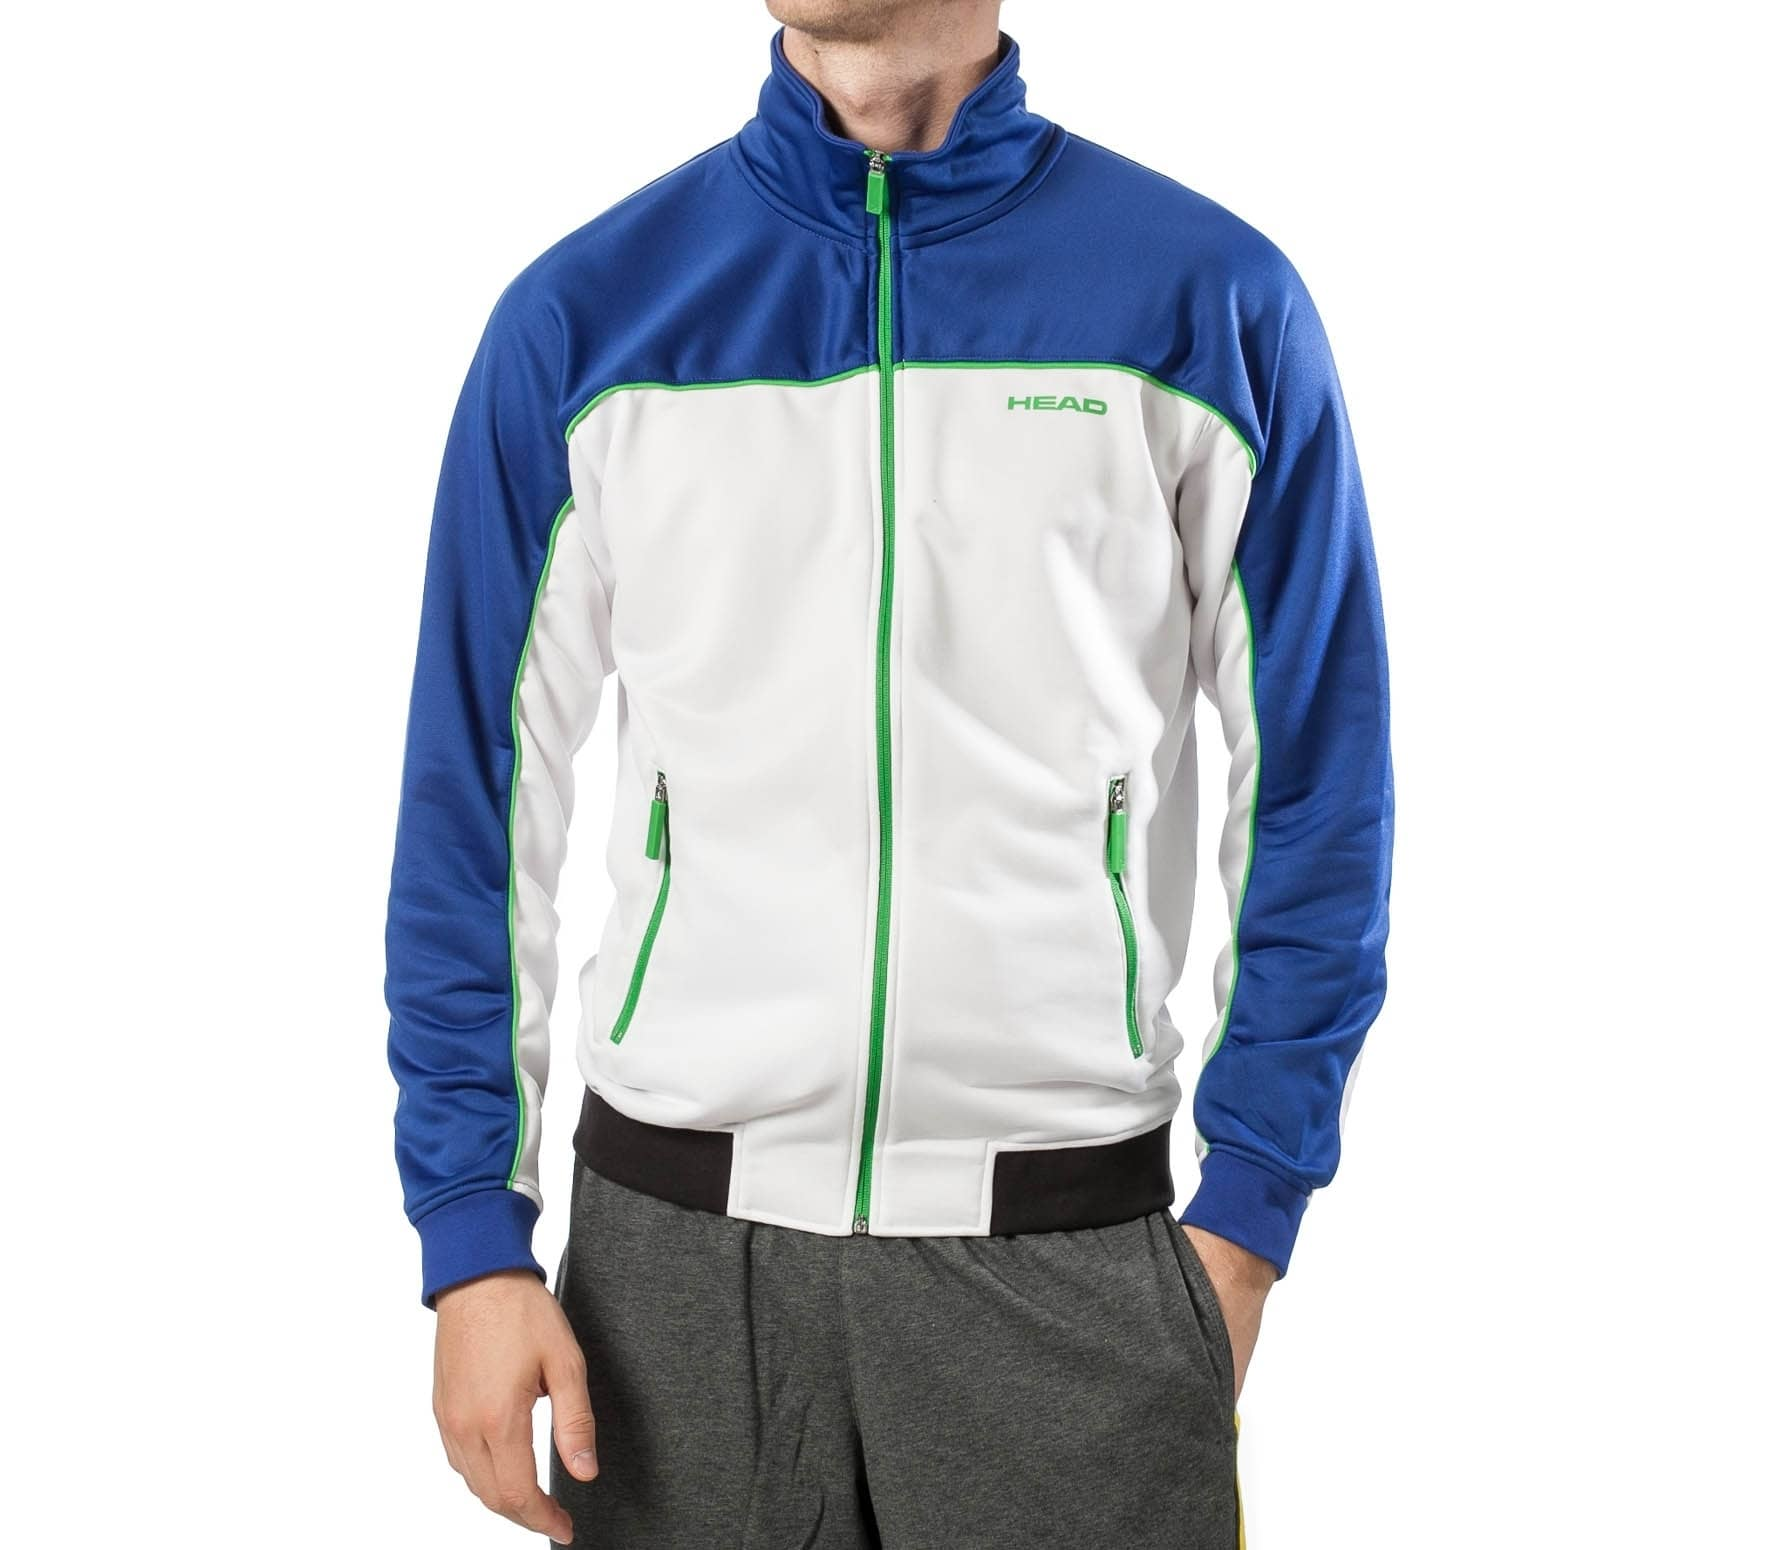 low cost faa20 0d7c4 Head - giacca sportiva Uomo Frequency Warm-Up Jacket